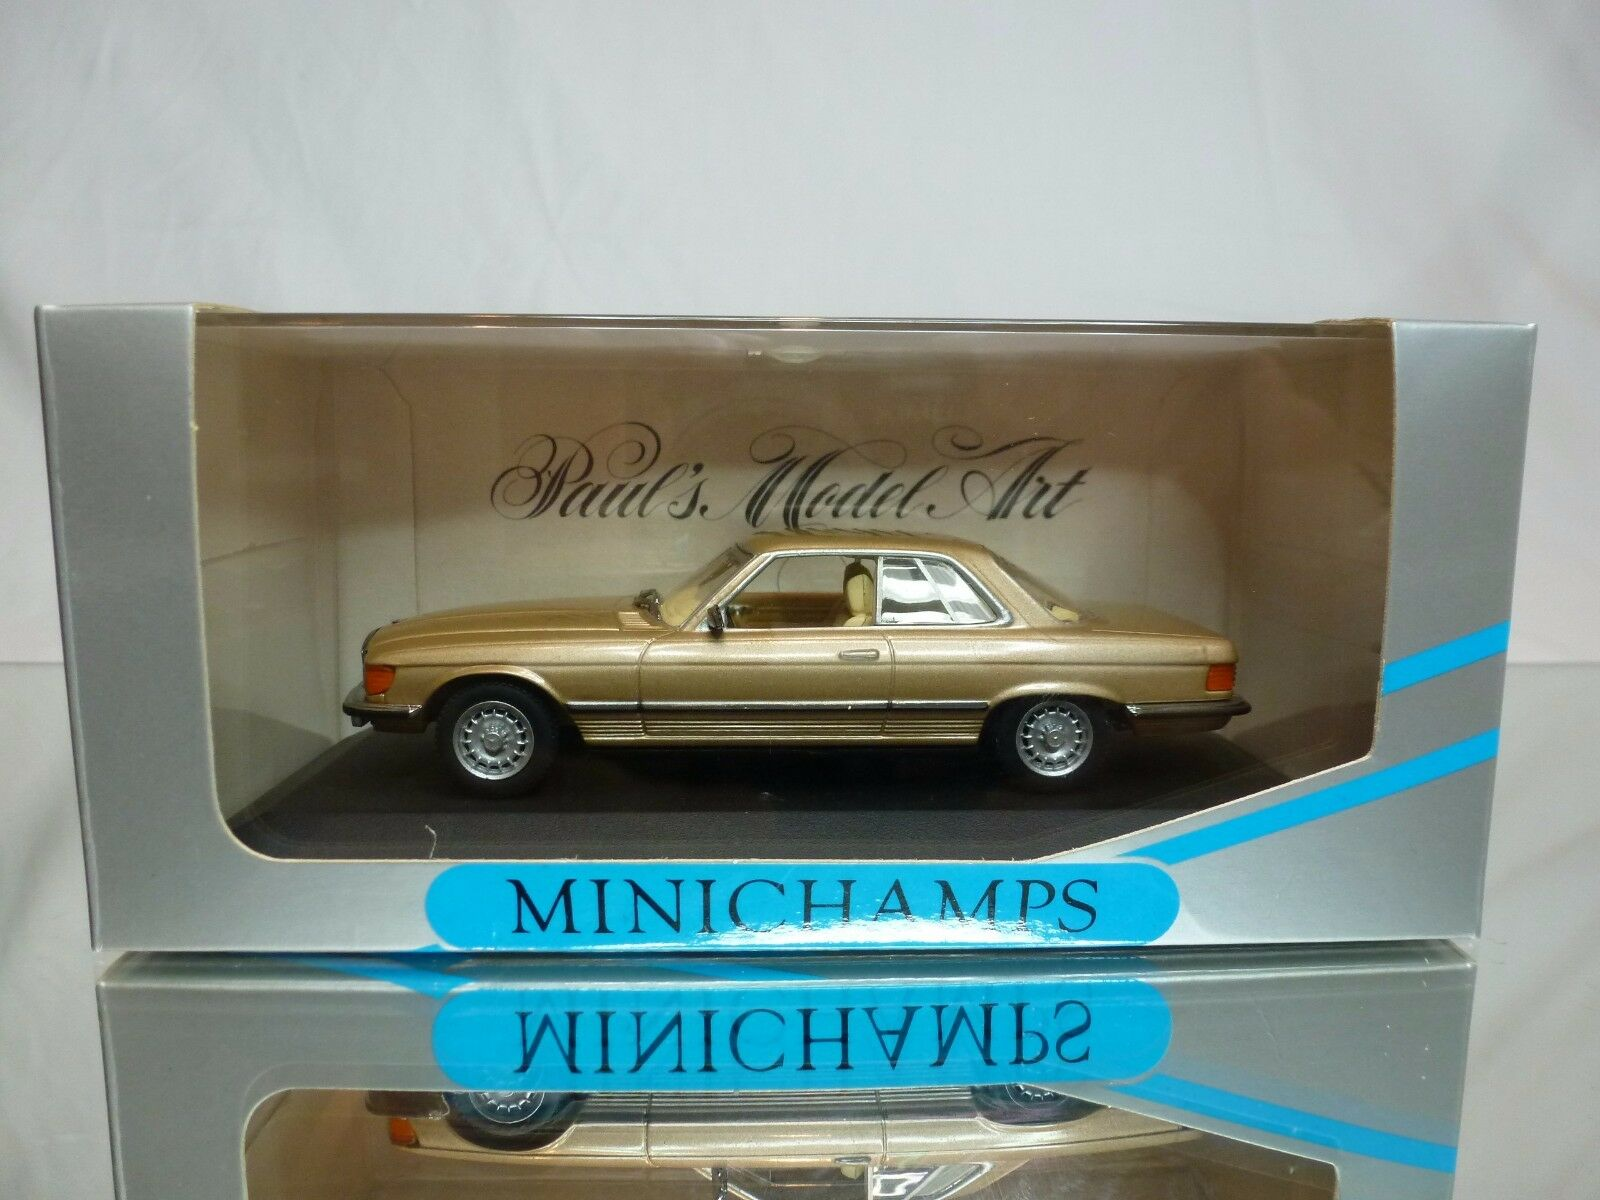 MINICHAMPS 33422 MERCEDES BENZ 450 SLC 1972-1980 - oro 1 43 - EXCELLENT IN scatola